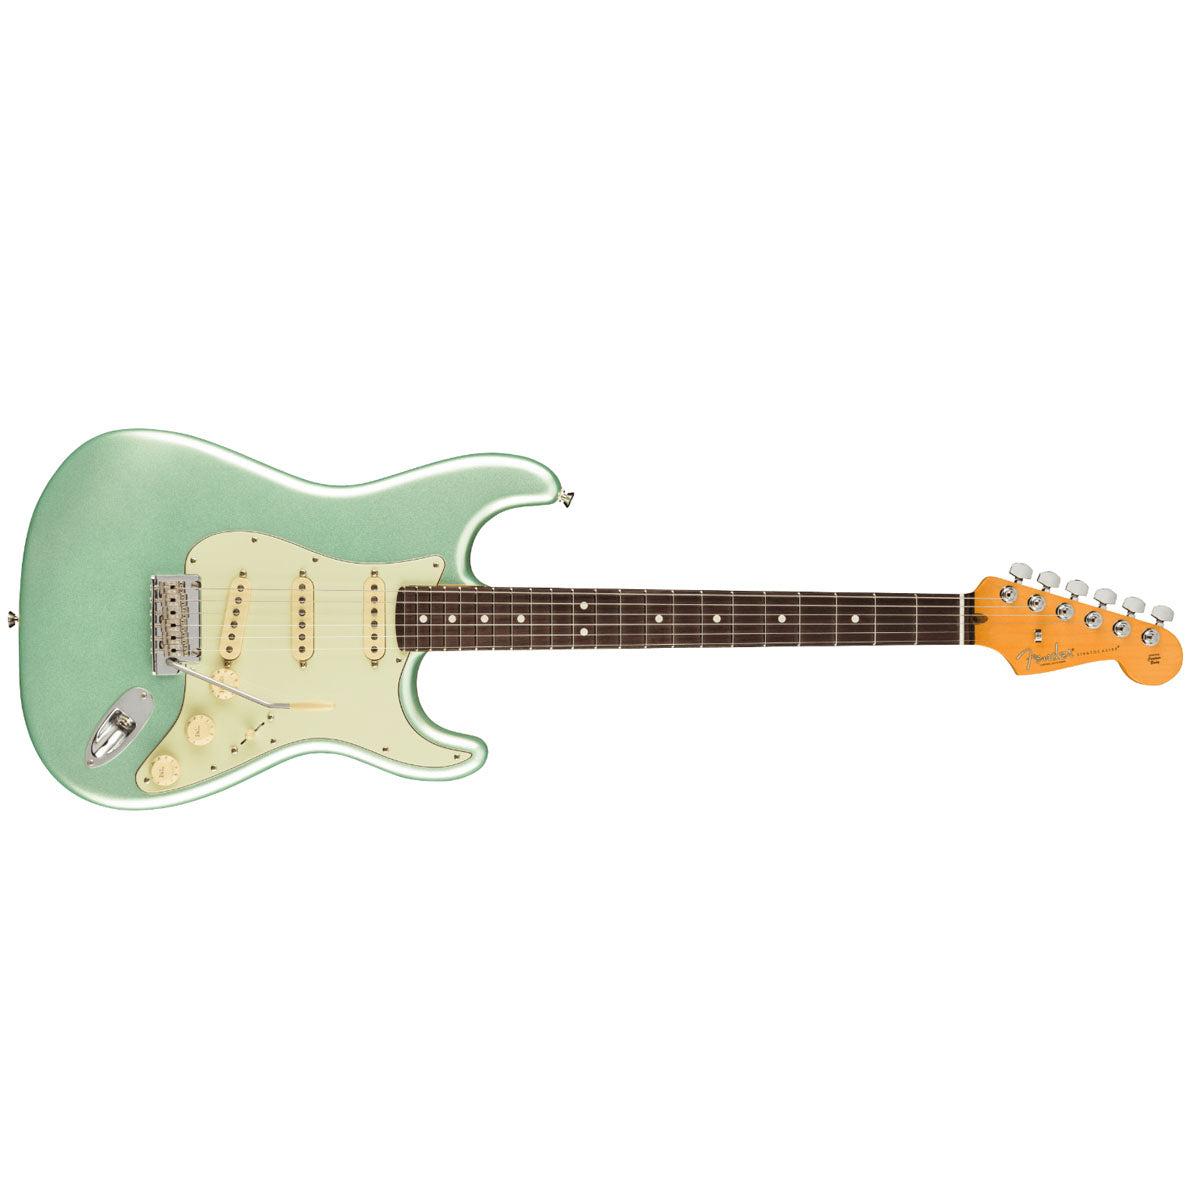 Fender American Professional II Stratocaster Electric Guitar Rosewood Fingerboard Mystic Surf Green - 0113900718